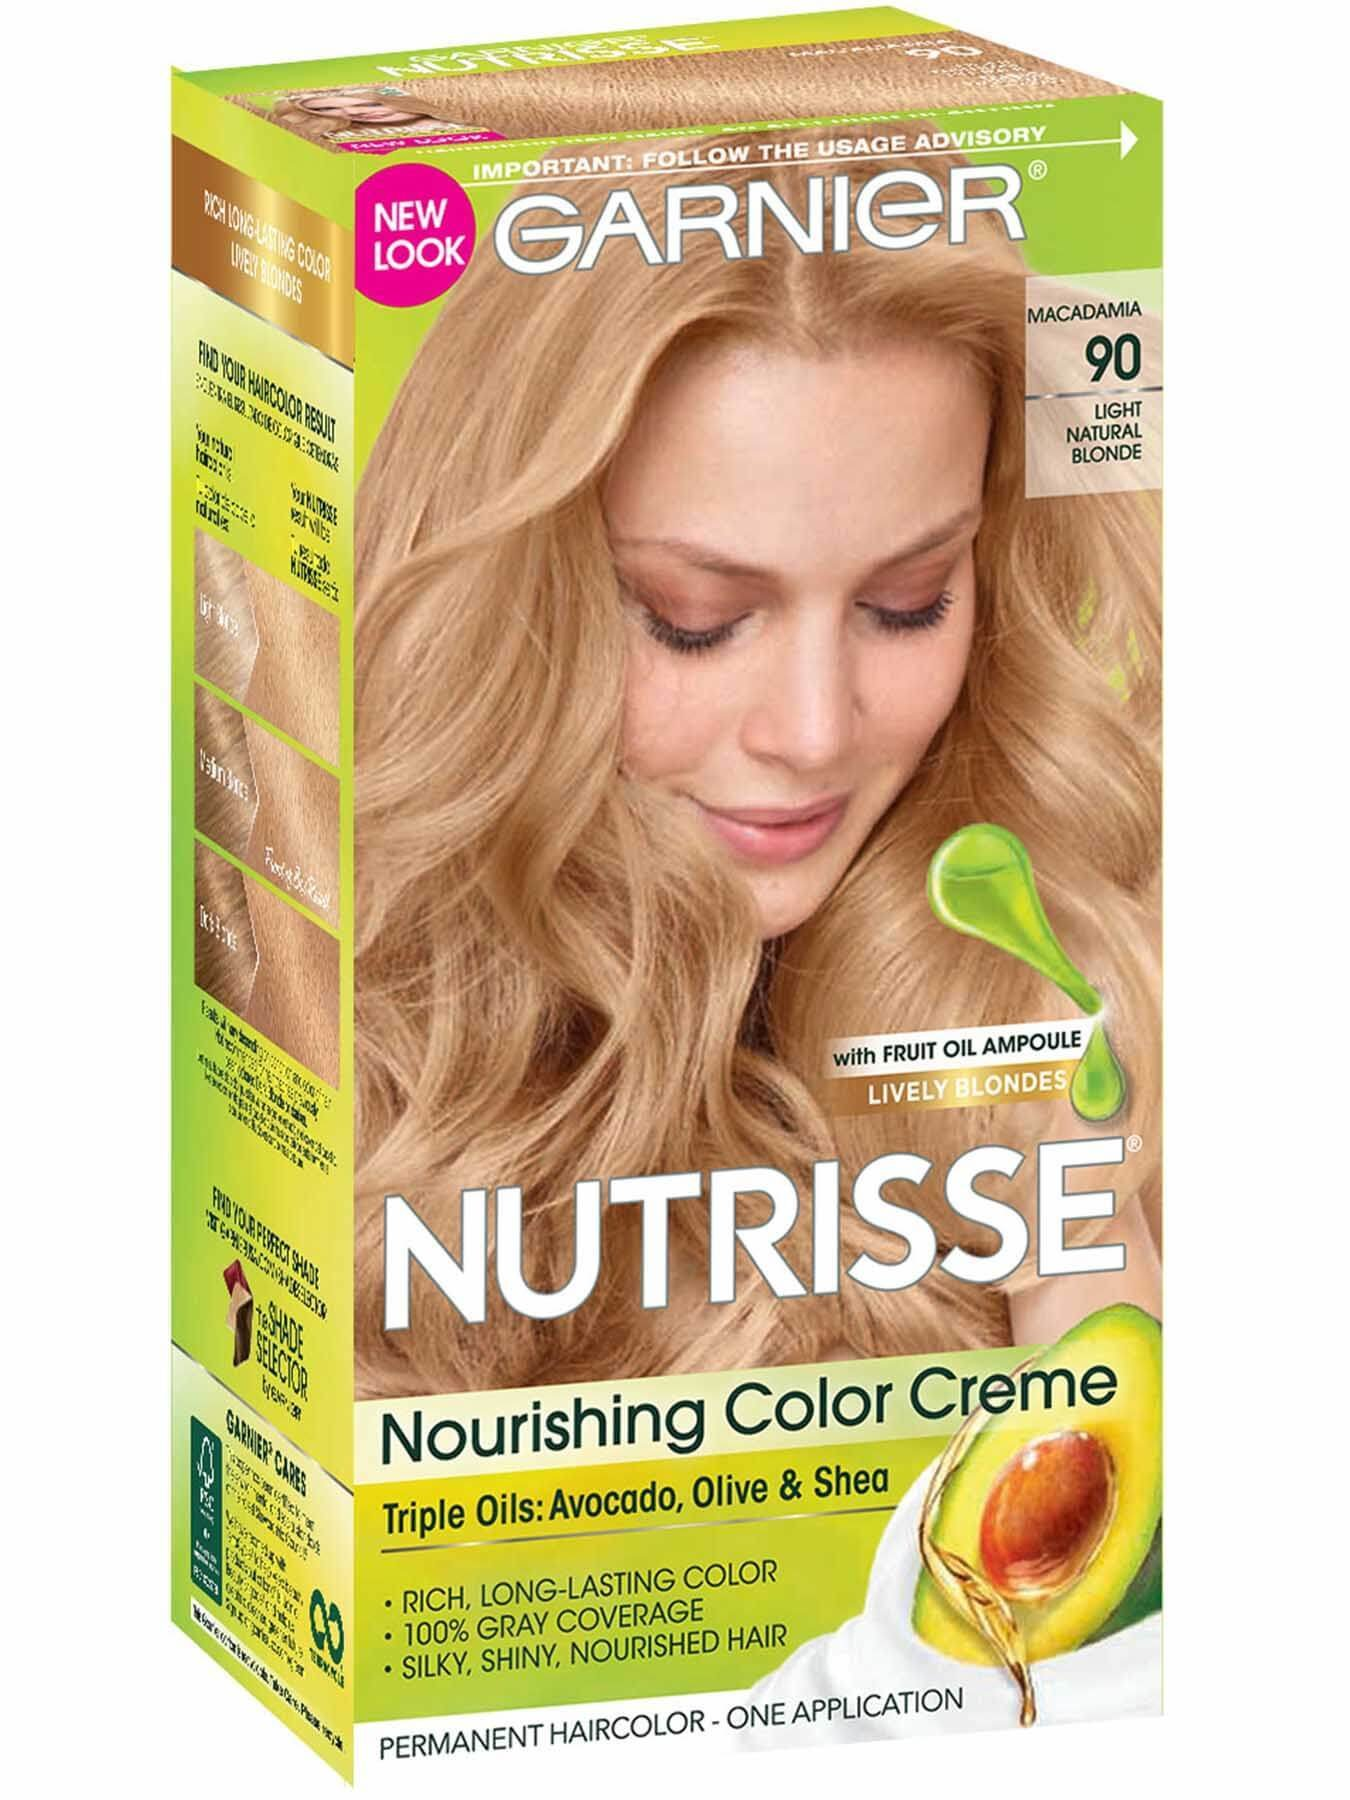 New Nutrisse Nourishing Color Creme Light Natural Blonde 90 Ideas With Pictures